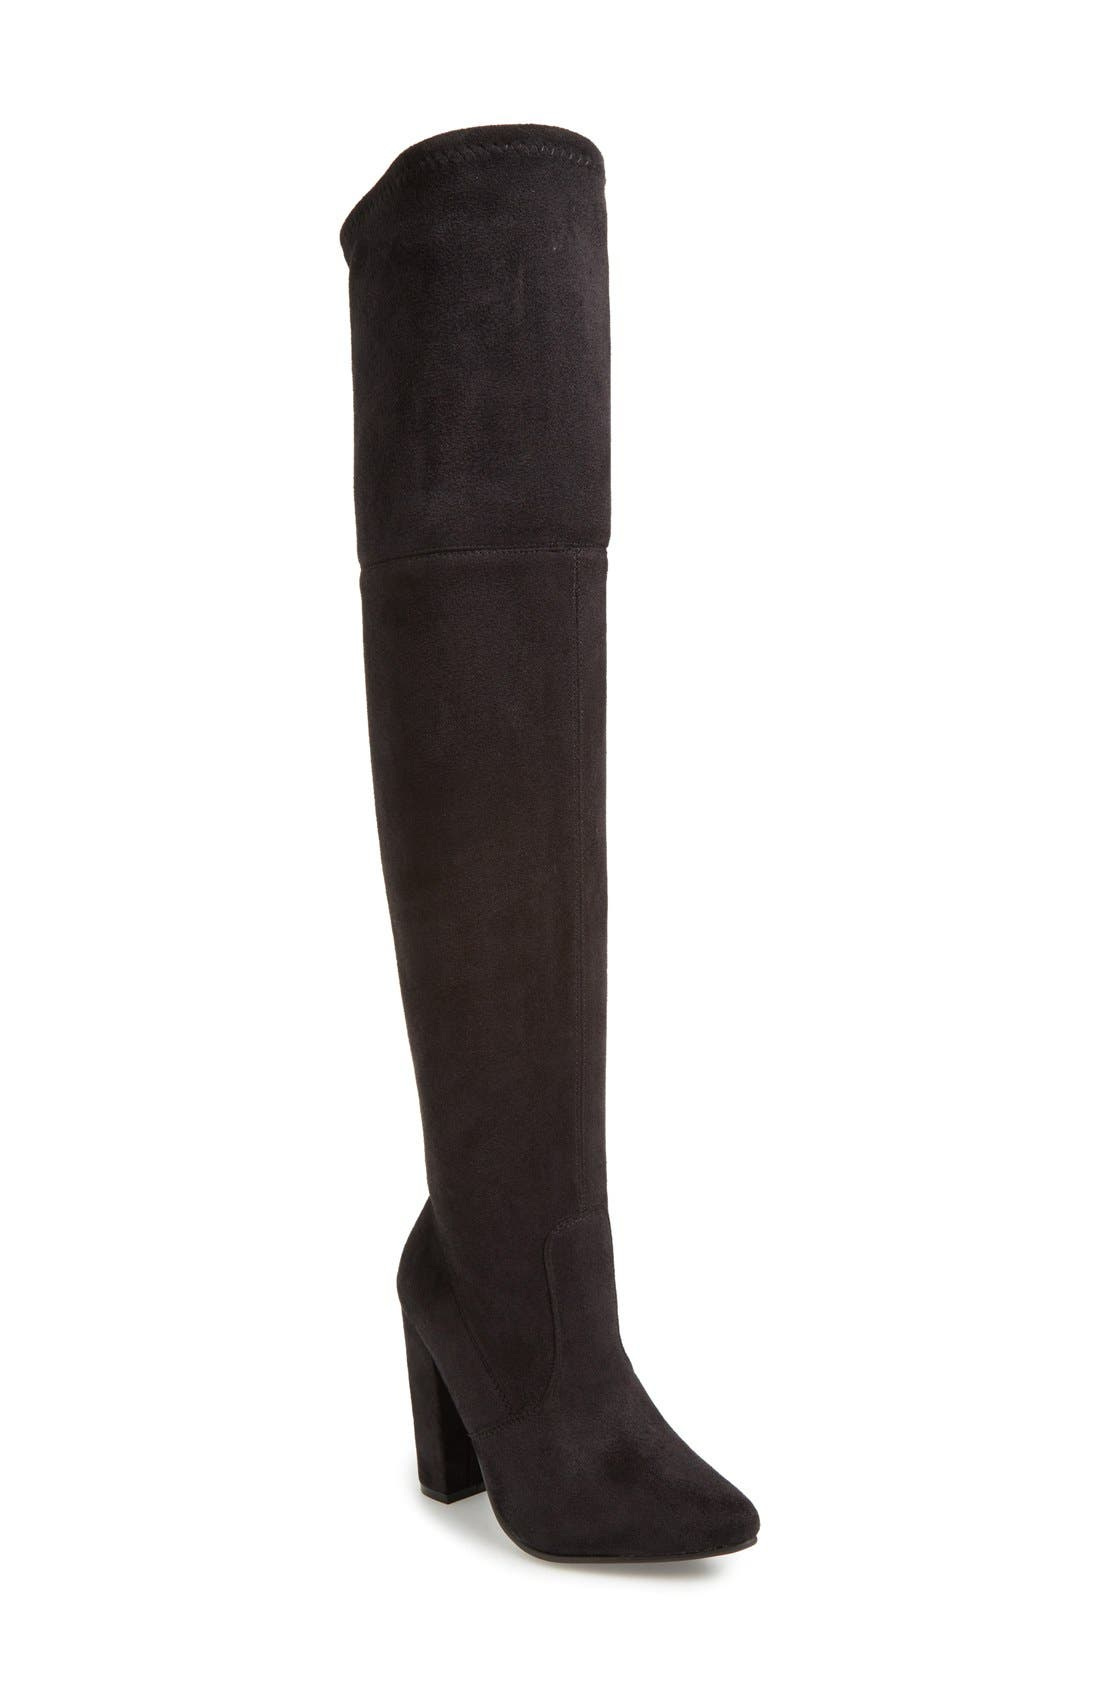 'Rocking' Over the Knee Boot,                             Main thumbnail 1, color,                             001